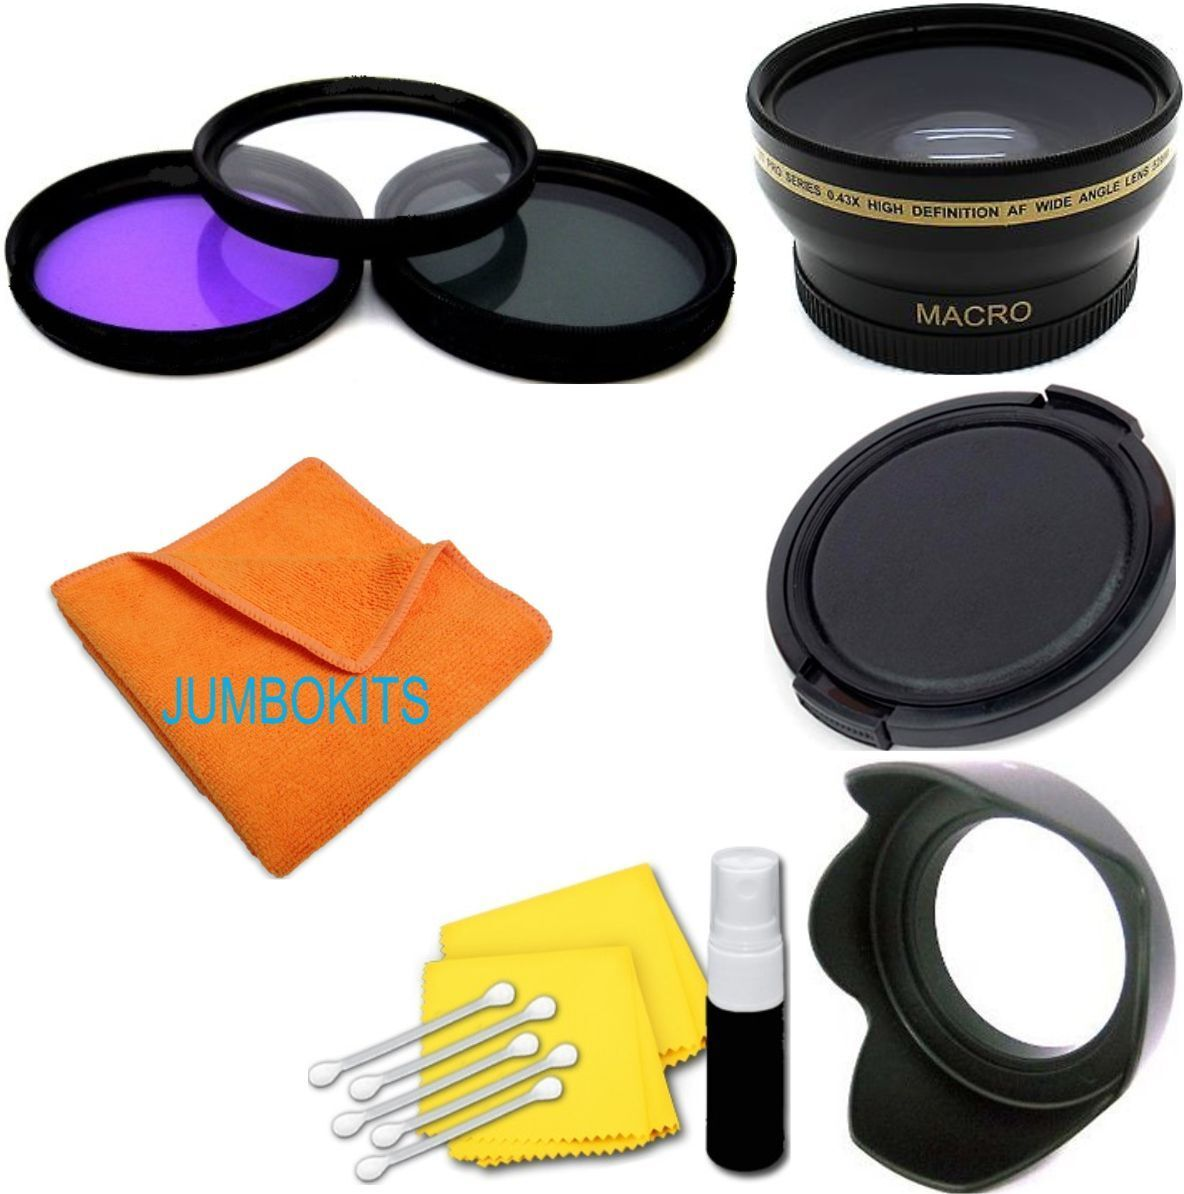 52mm Fisheye Macro Lens + Hood + Filter Kit+ Cap For Niko...